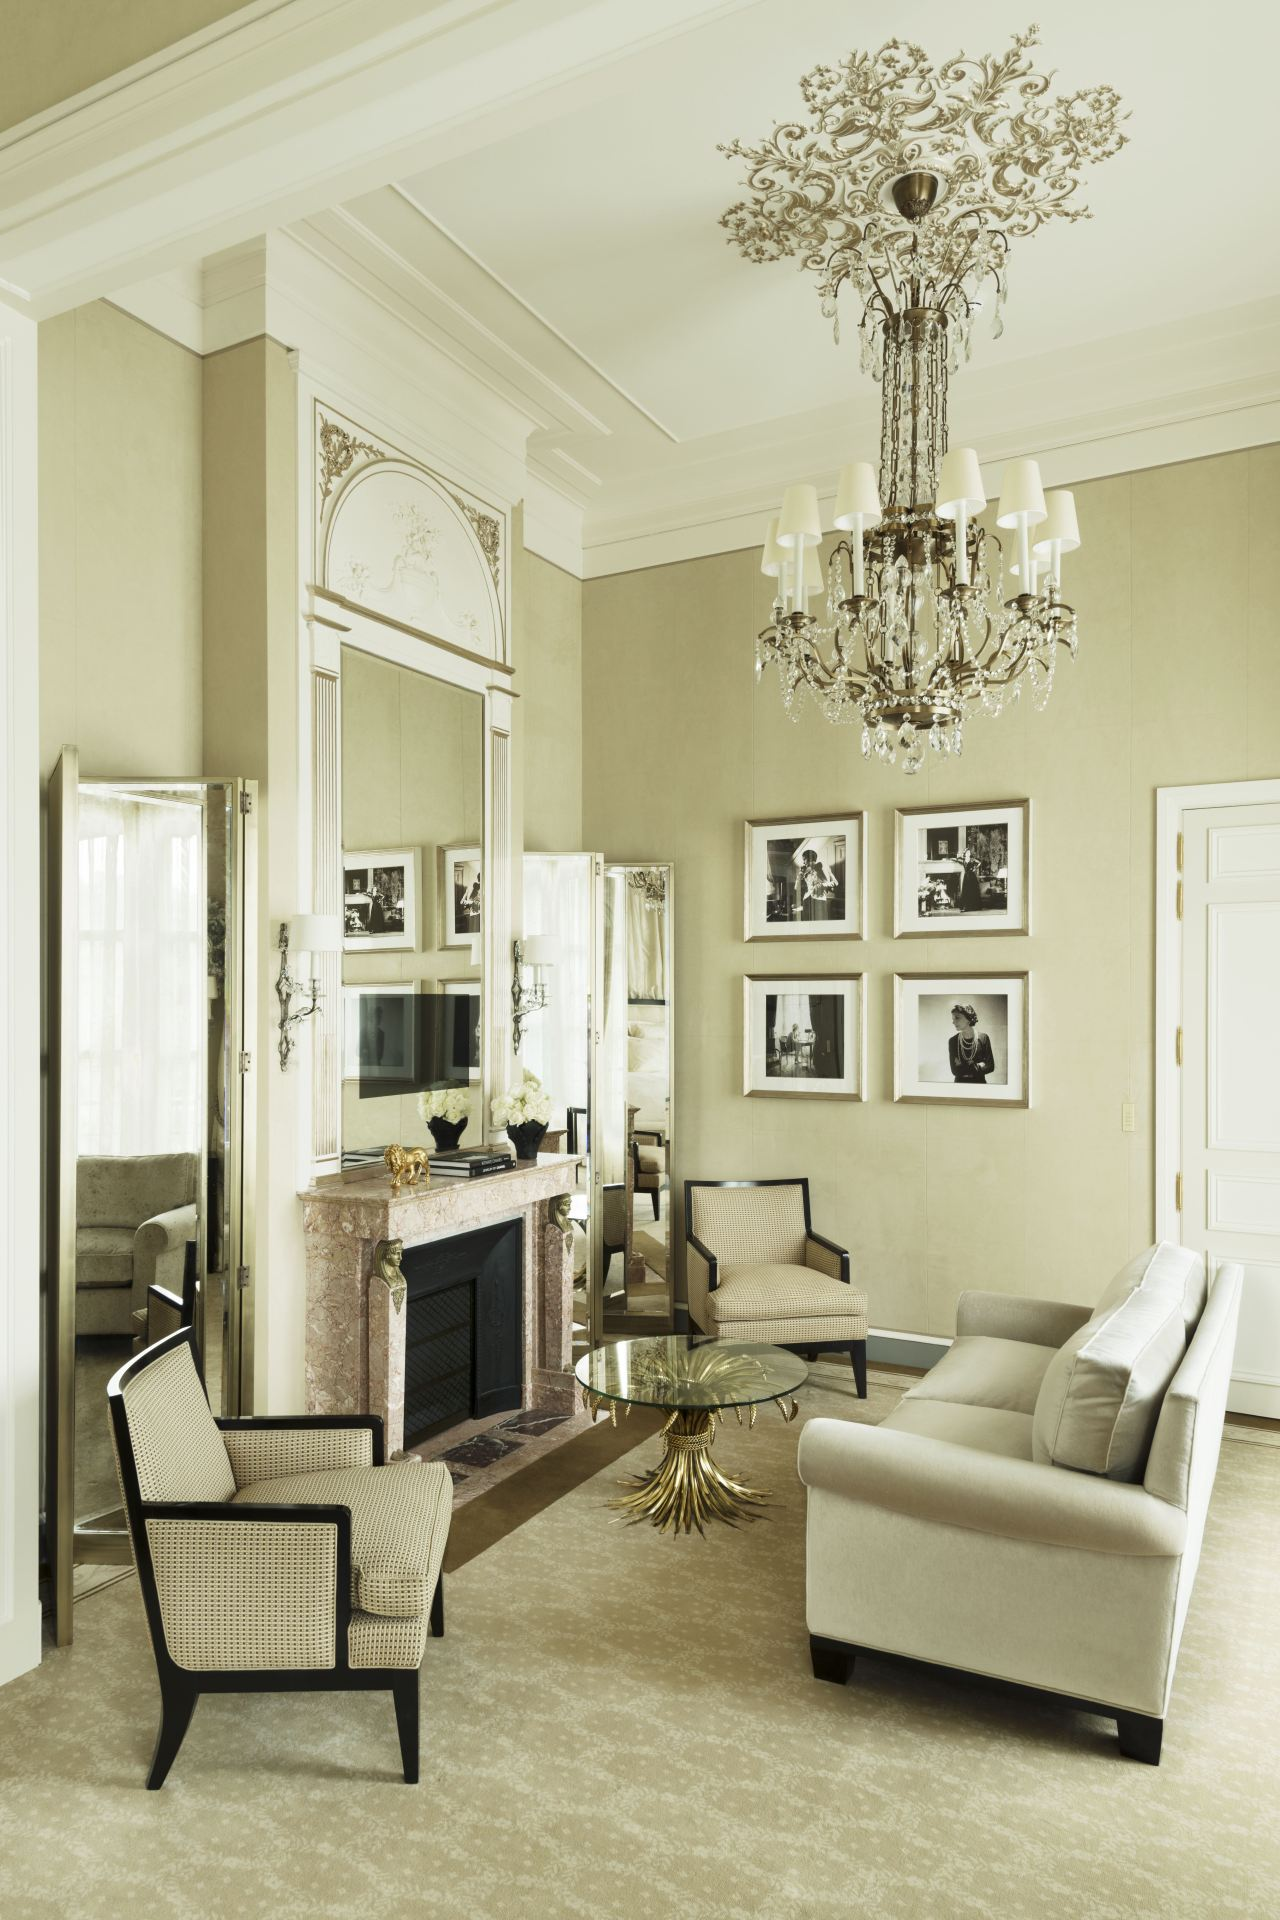 Inside the hotel Coco Chanel called home